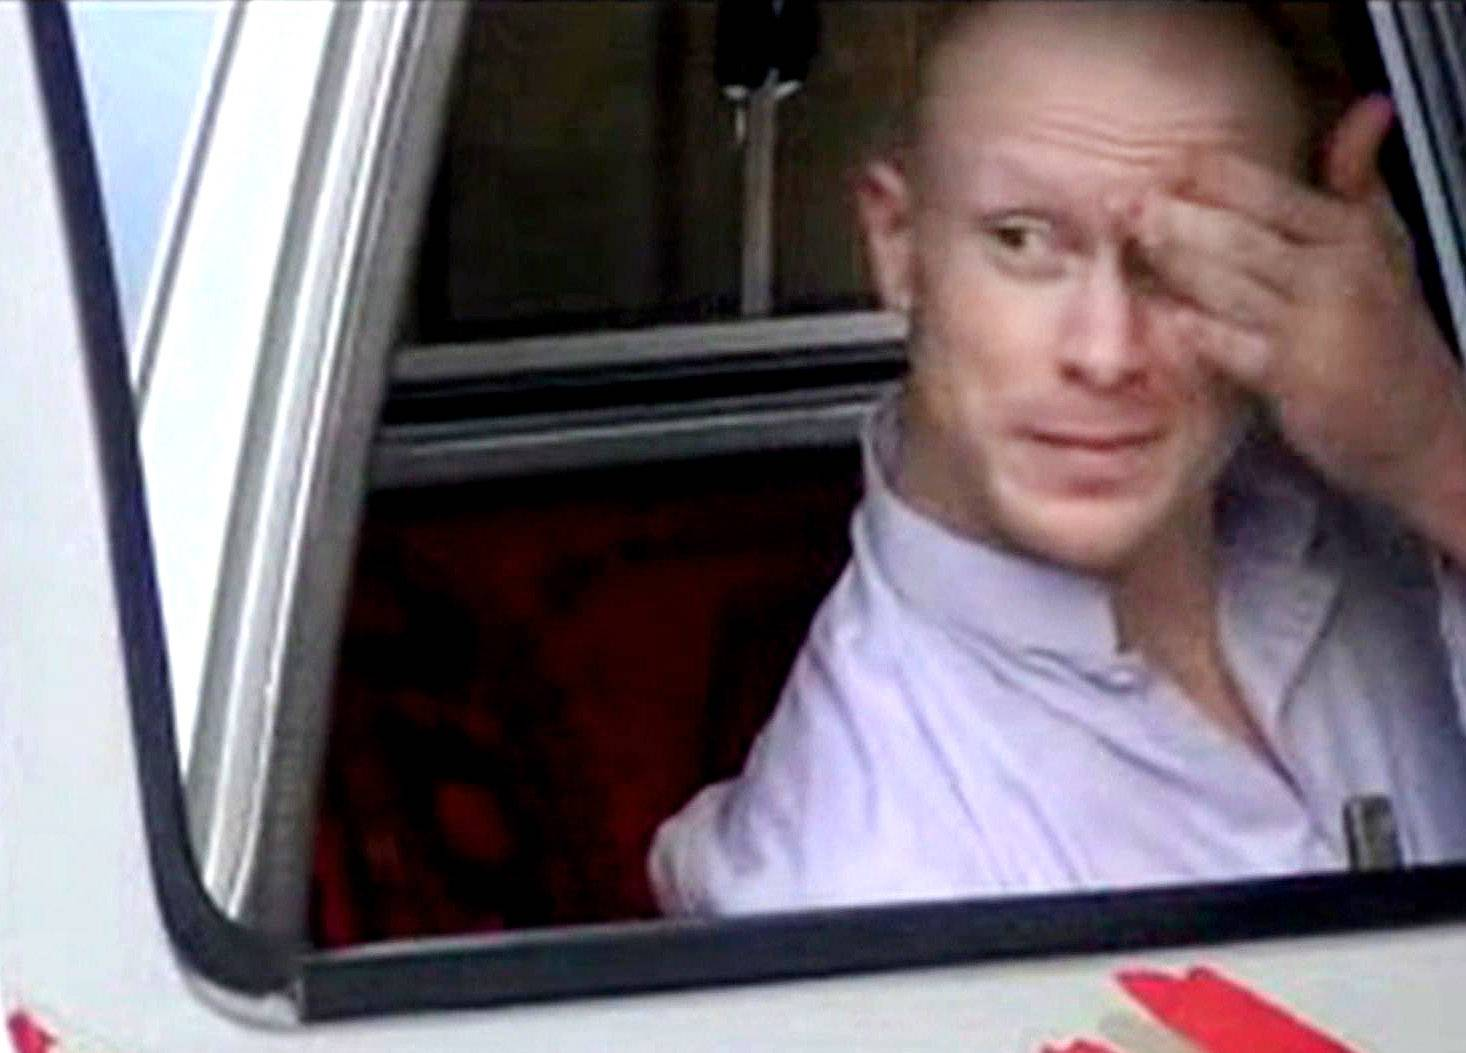 Sgt. Bowe Bergdahl, who spent nearly five years as a Taliban captive in Afghanistan, has been returned to regular Army duty. As of Monday he is assigned to U.S. Army North at Joint Base San Antonio-Fort Sam Houston in Texas. That is the same location where he has been decompressing from the effects of his lengthy captivity.